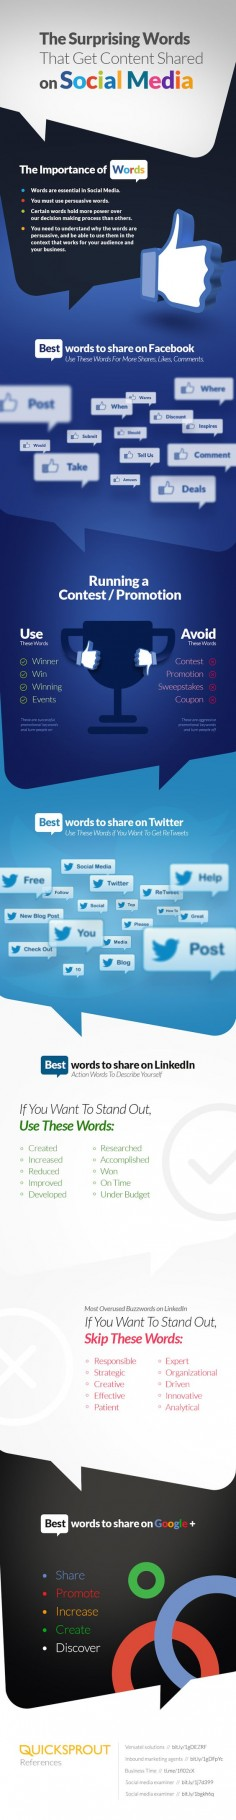 The Surprising Words That Get Content Shared On Social Media.